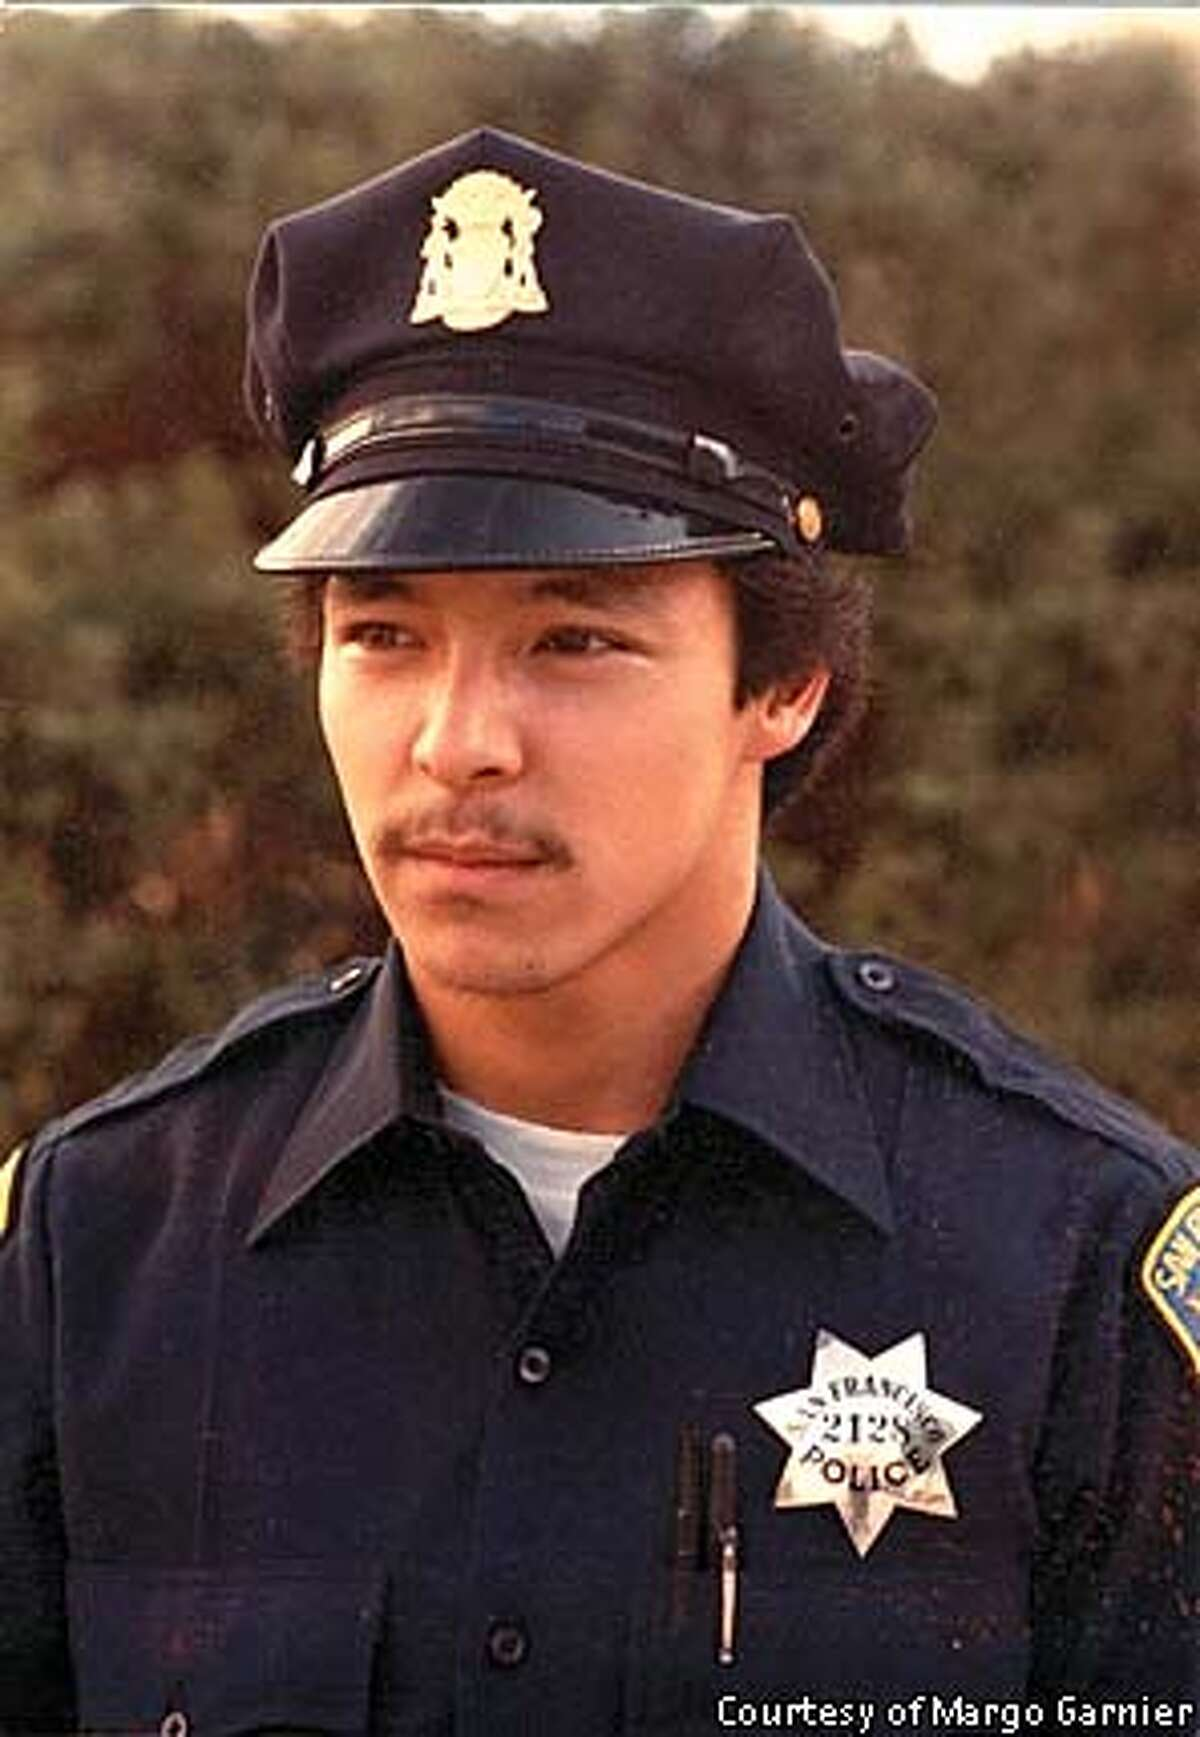 S.F. vice cop Lester Garnier. Photo Courtesy of Margo Garnier